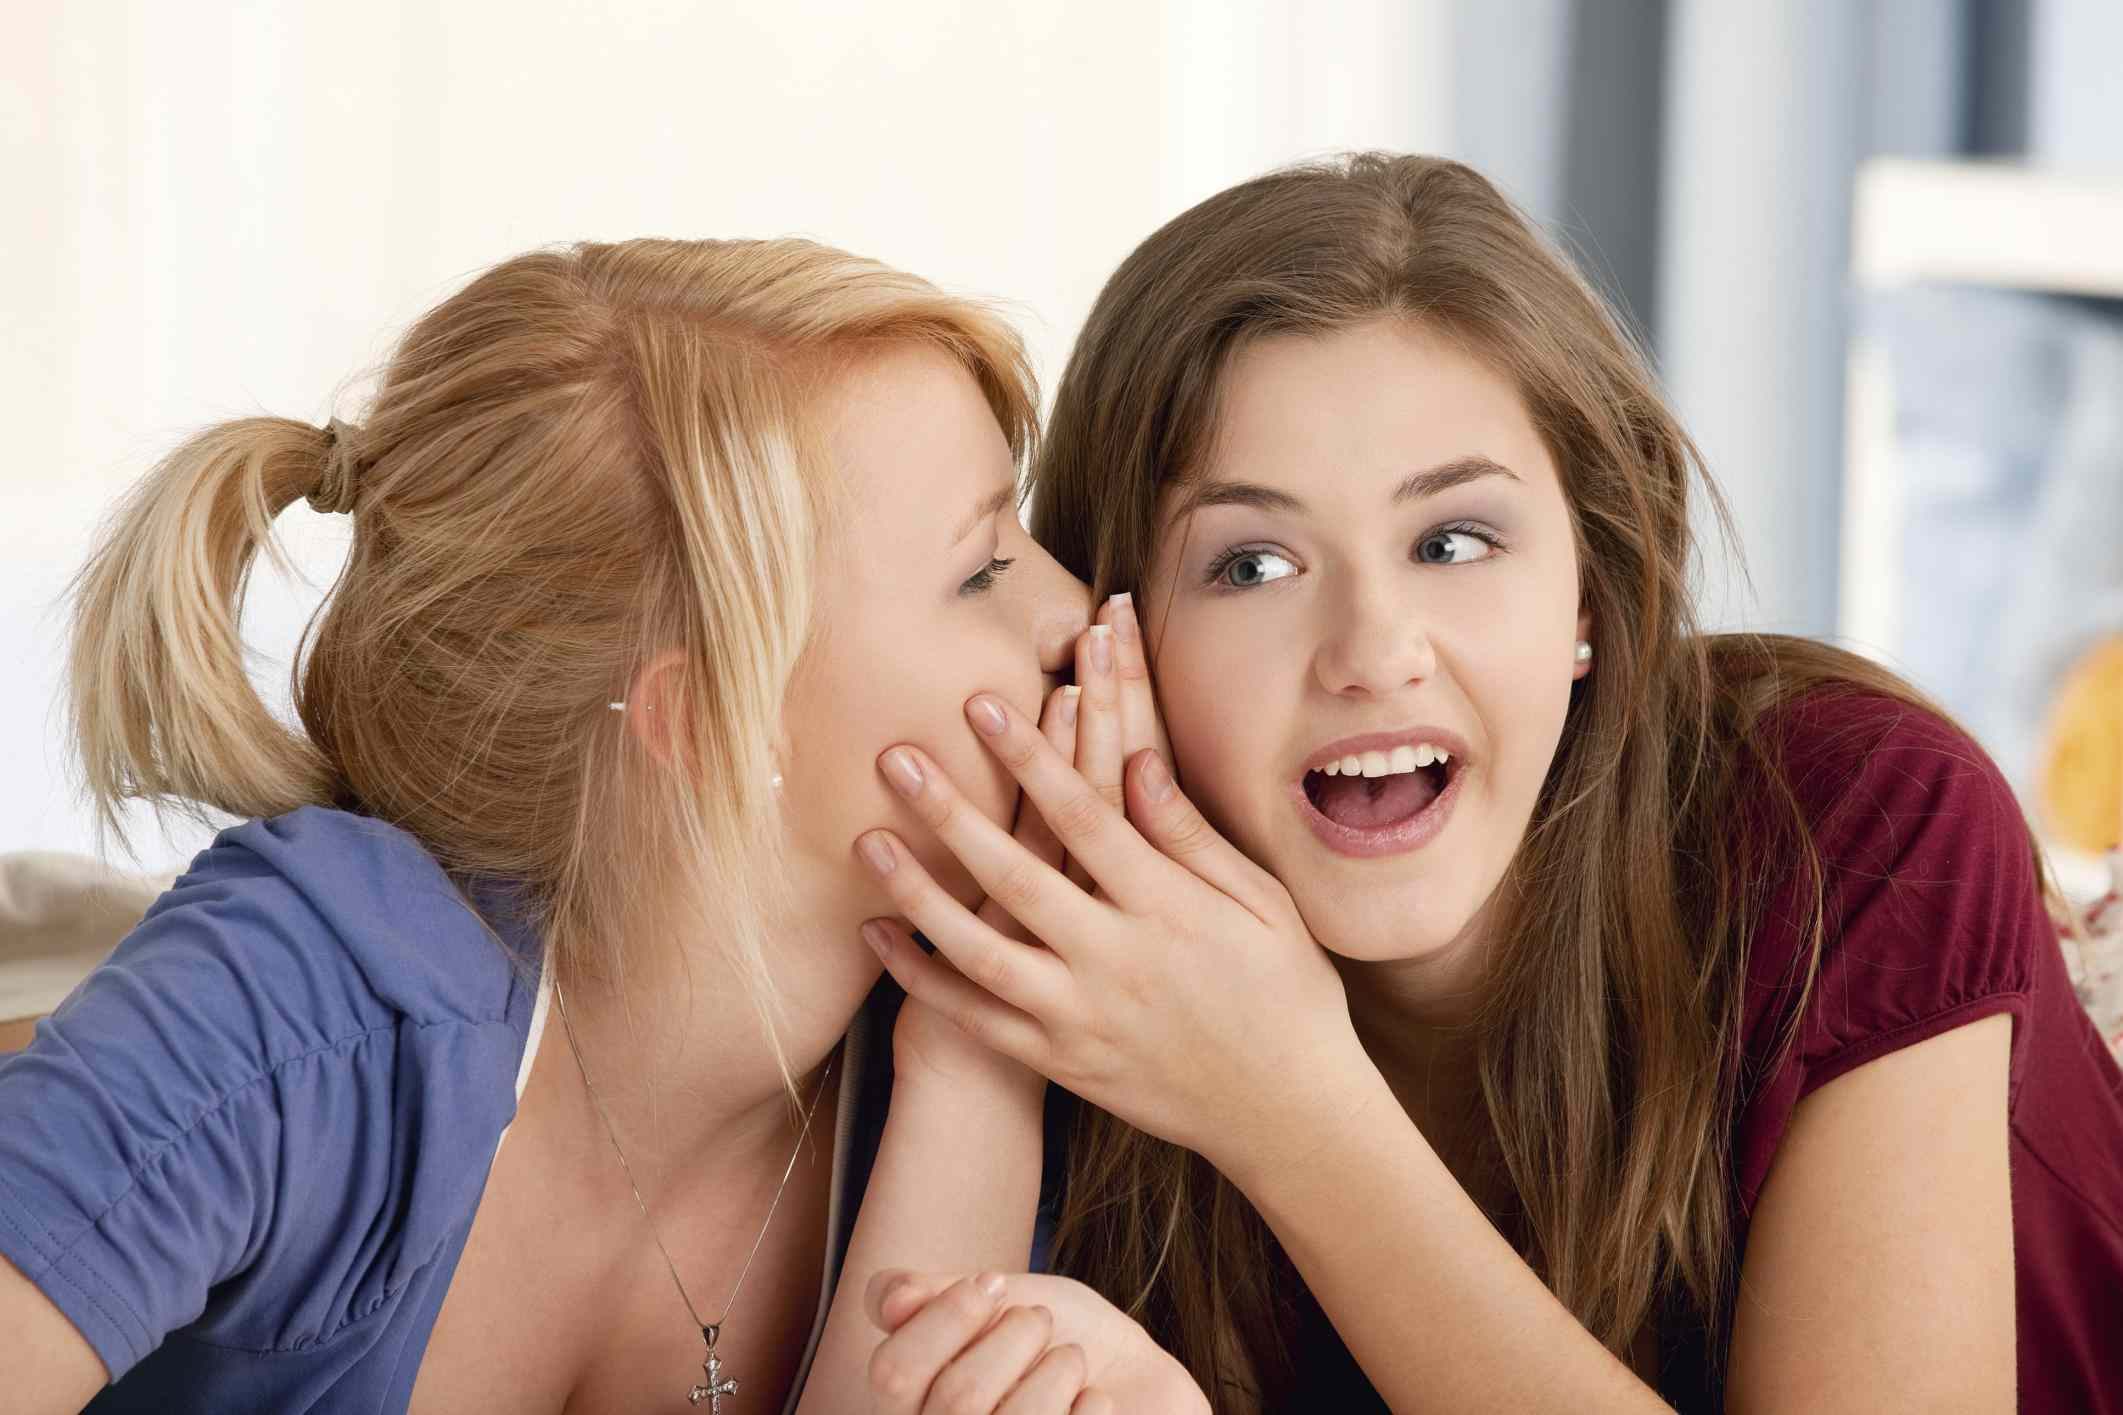 Two teenage girls whispering in their room